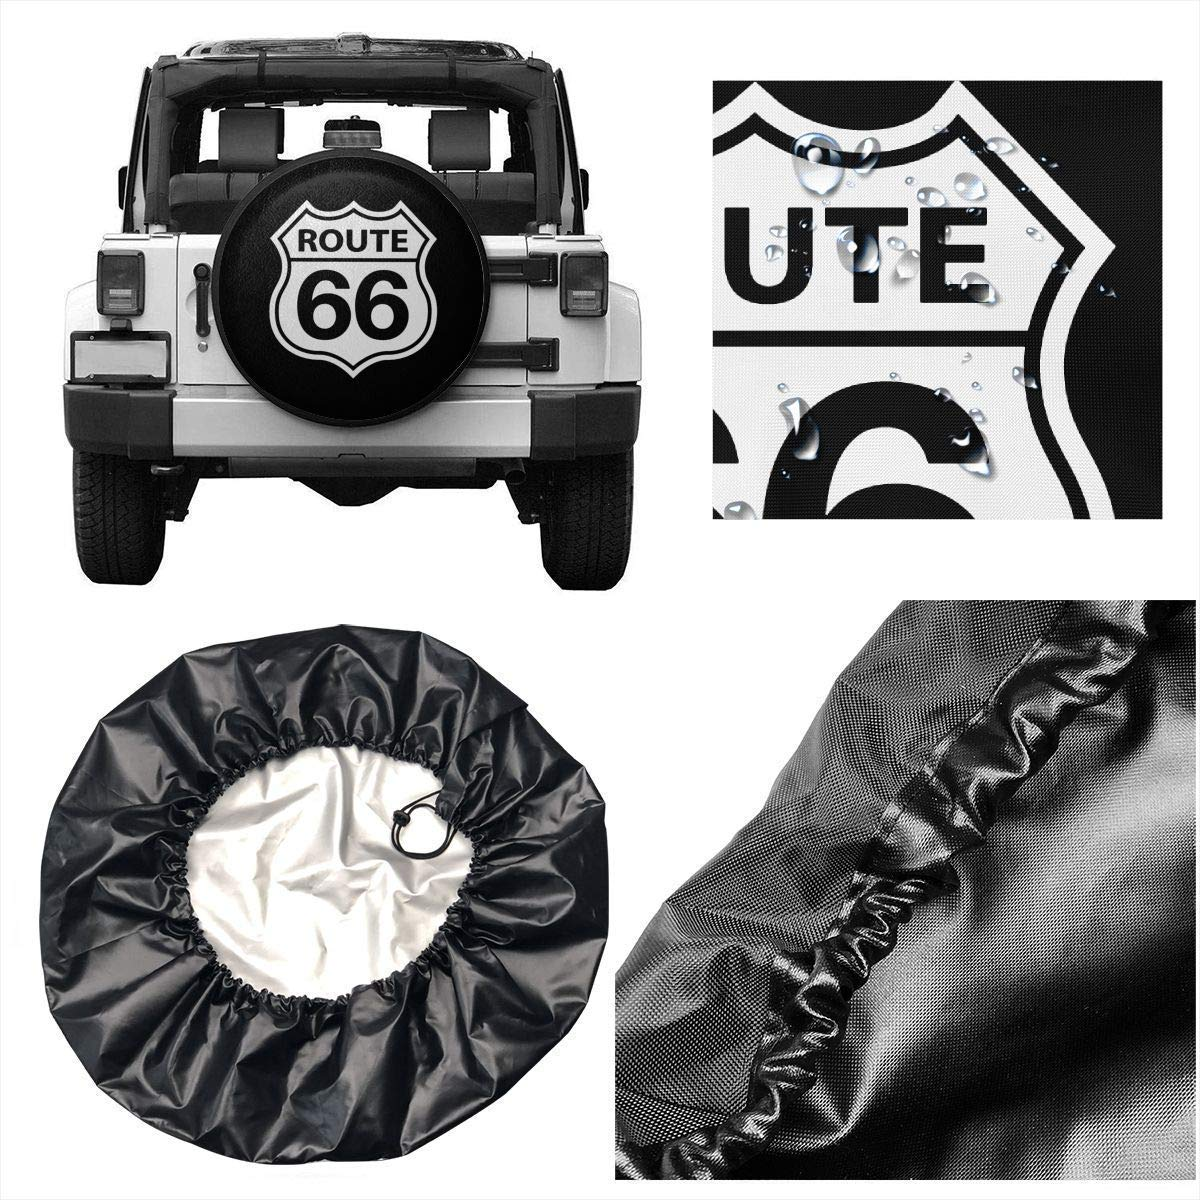 fengxutongxue Route 66 Vacation Highway Road Sign Polyester Universal Spare Wheel Tire Cover Wheel Covers Jeep Trailer RV SUV Truck Camper Travel Trailer Accessories 15 inch